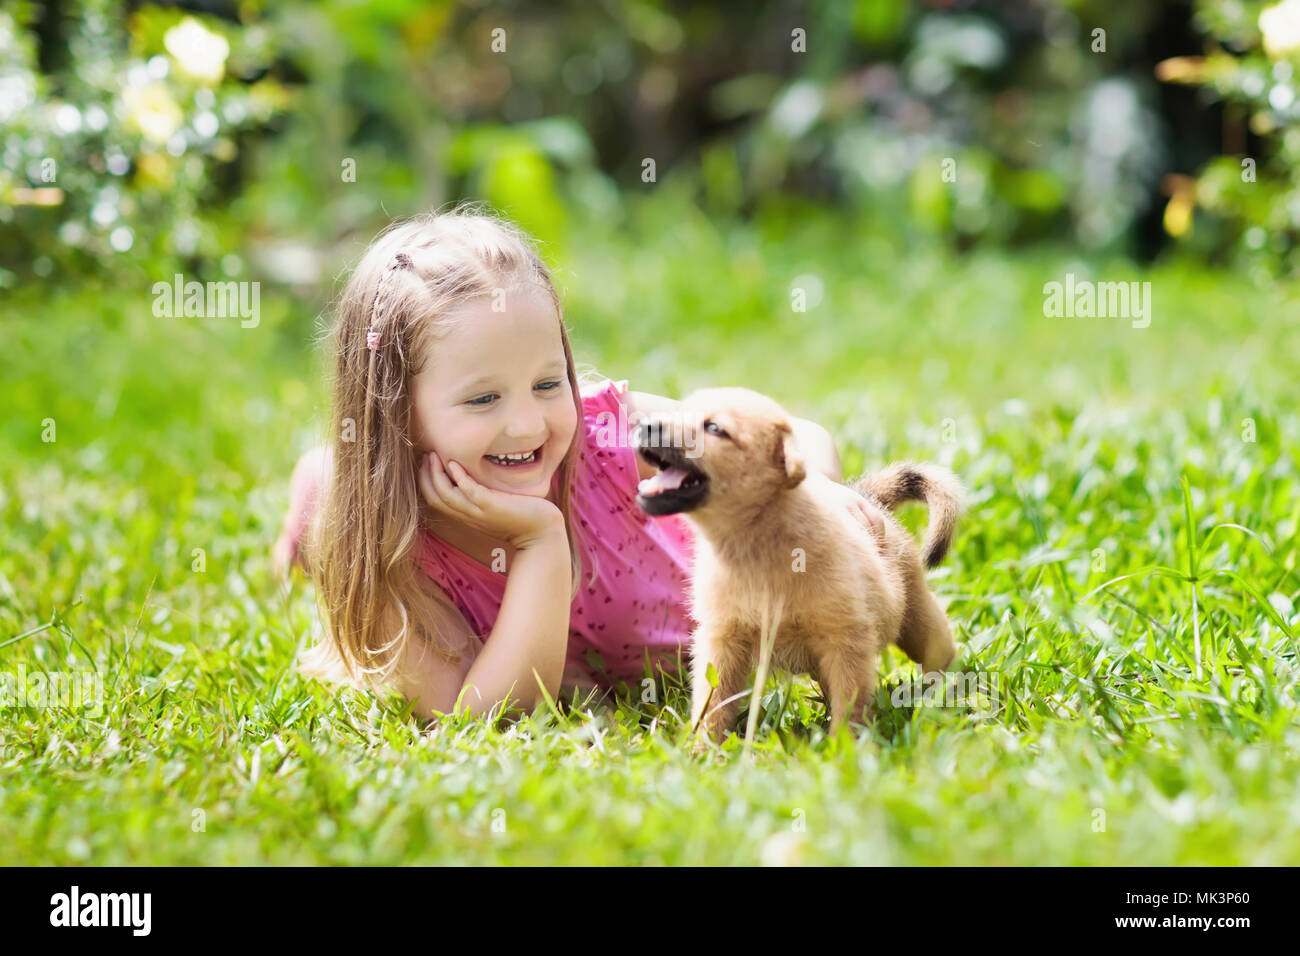 Kids Play With Cute Little Puppy Children And Baby Dogs Playing In Sunny Summer Garden Little Girl Holding Puppies Child With Pet Dog Family And P Stock Photo Alamy